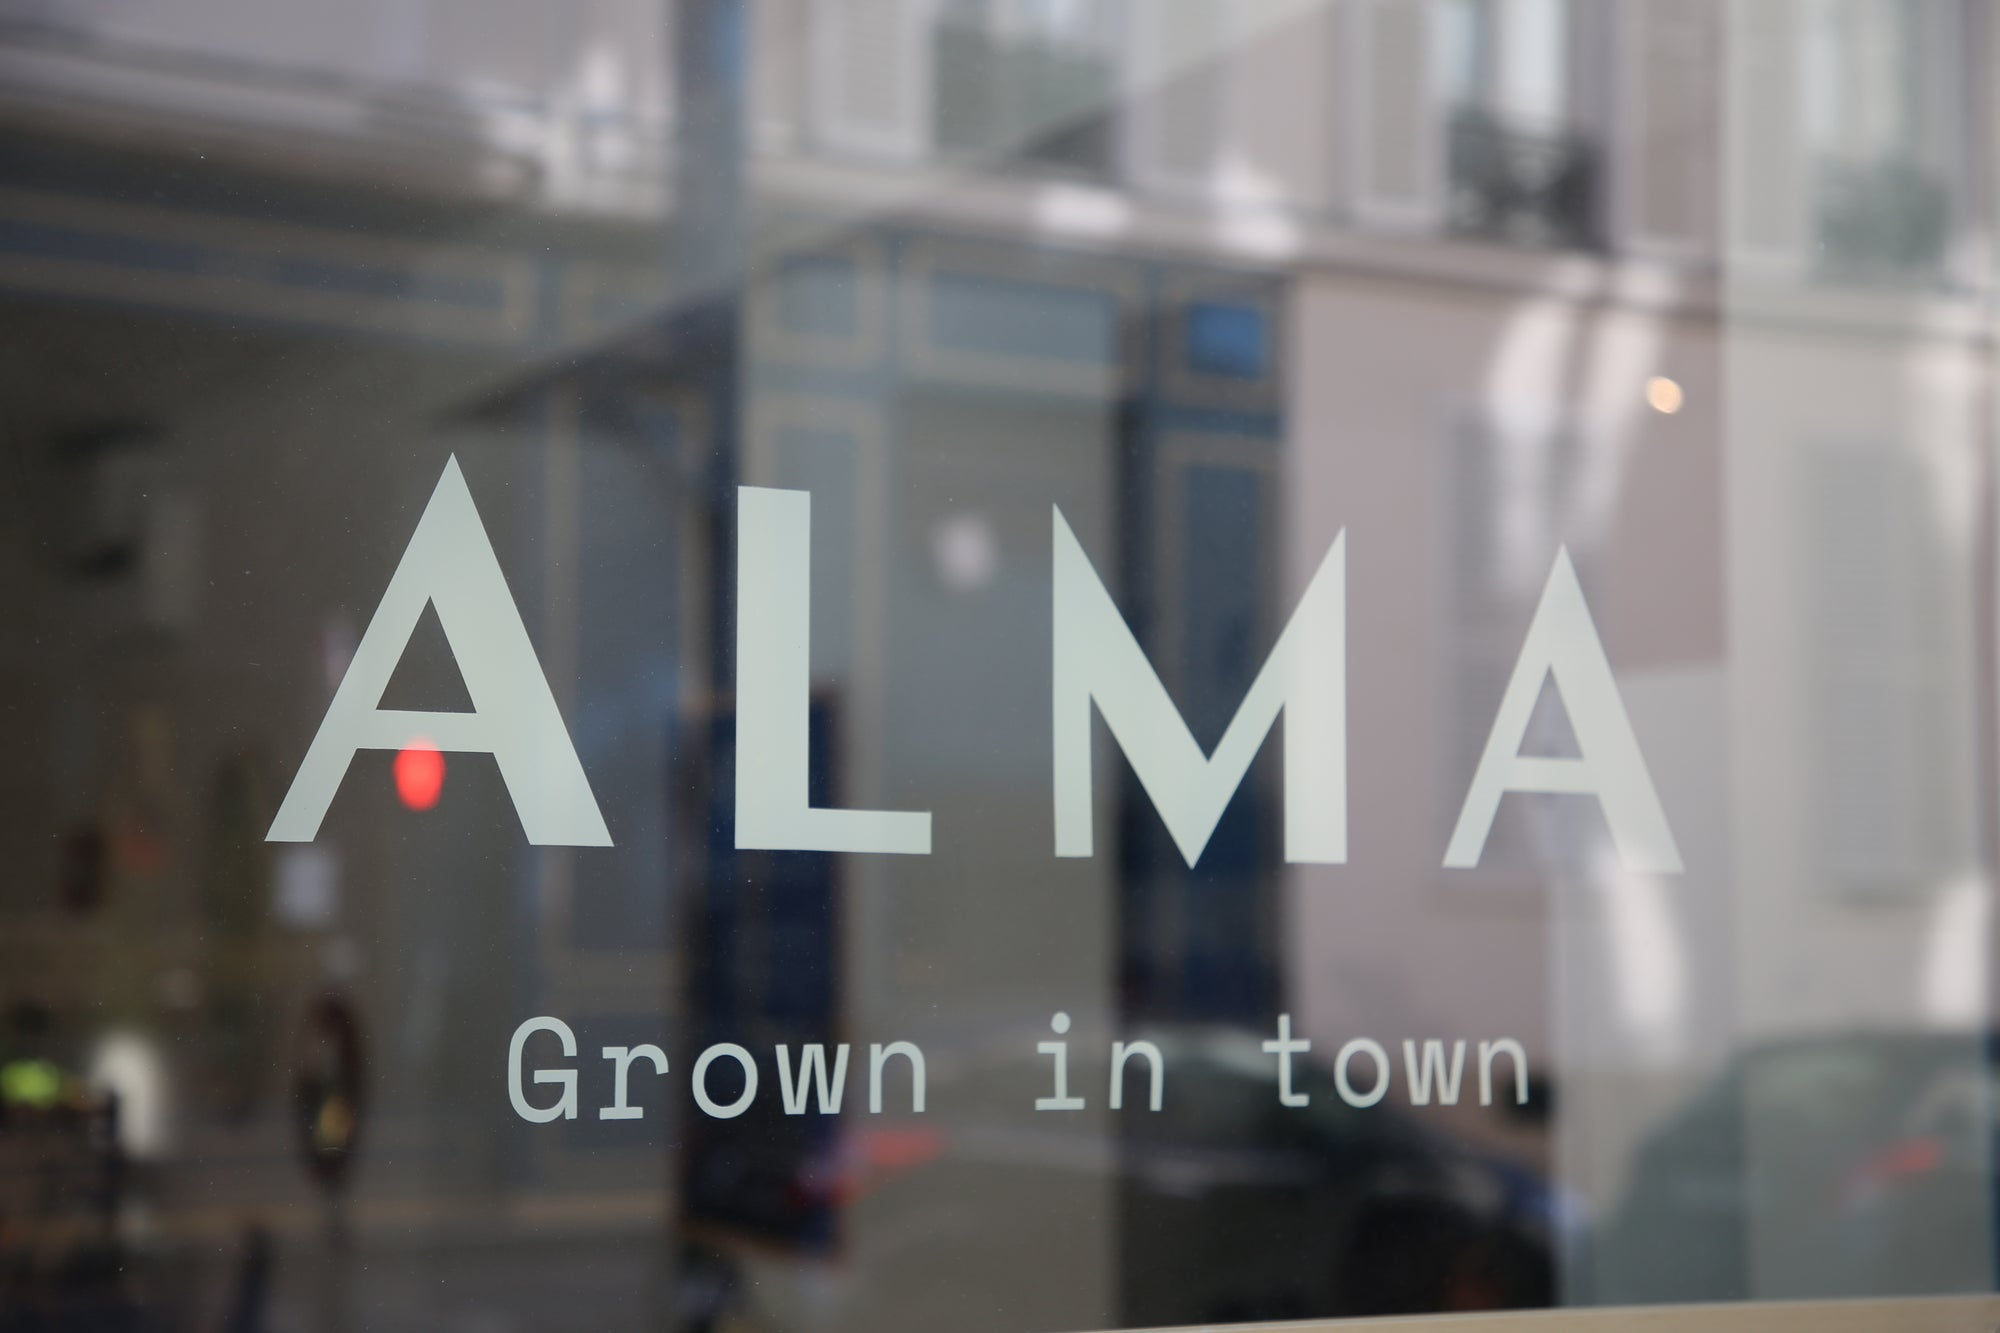 Boutique Alma Grown in Town